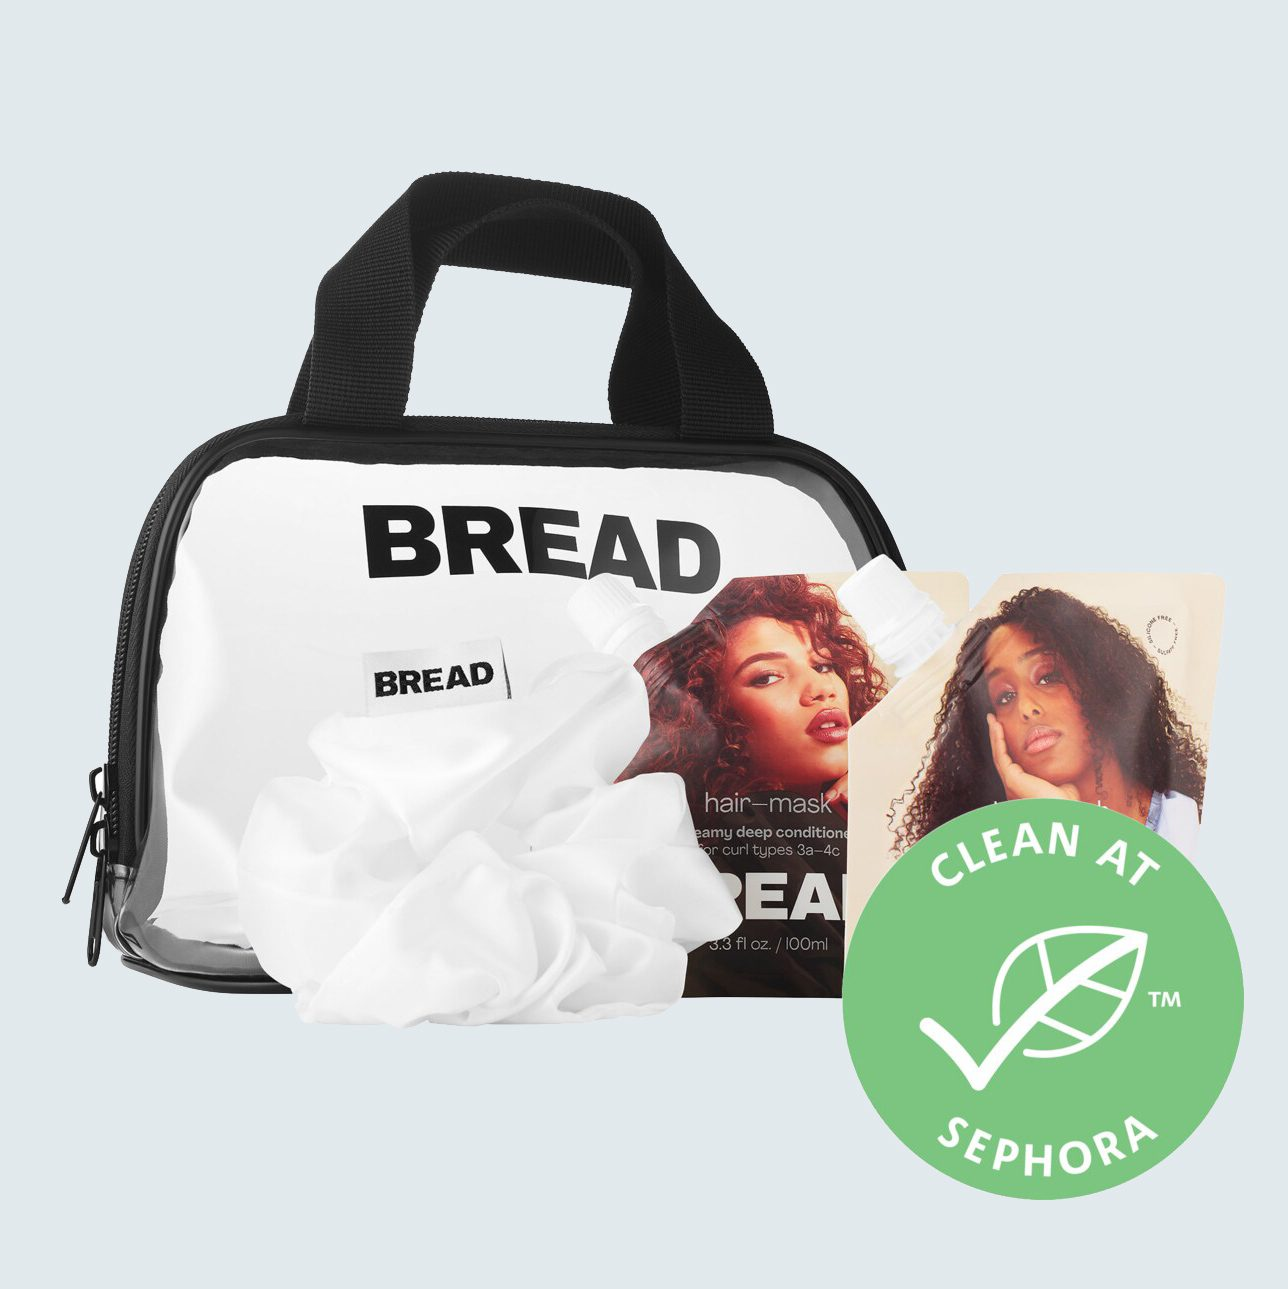 Bread Beauty SNAC-PACK Cleanse & Mask minis